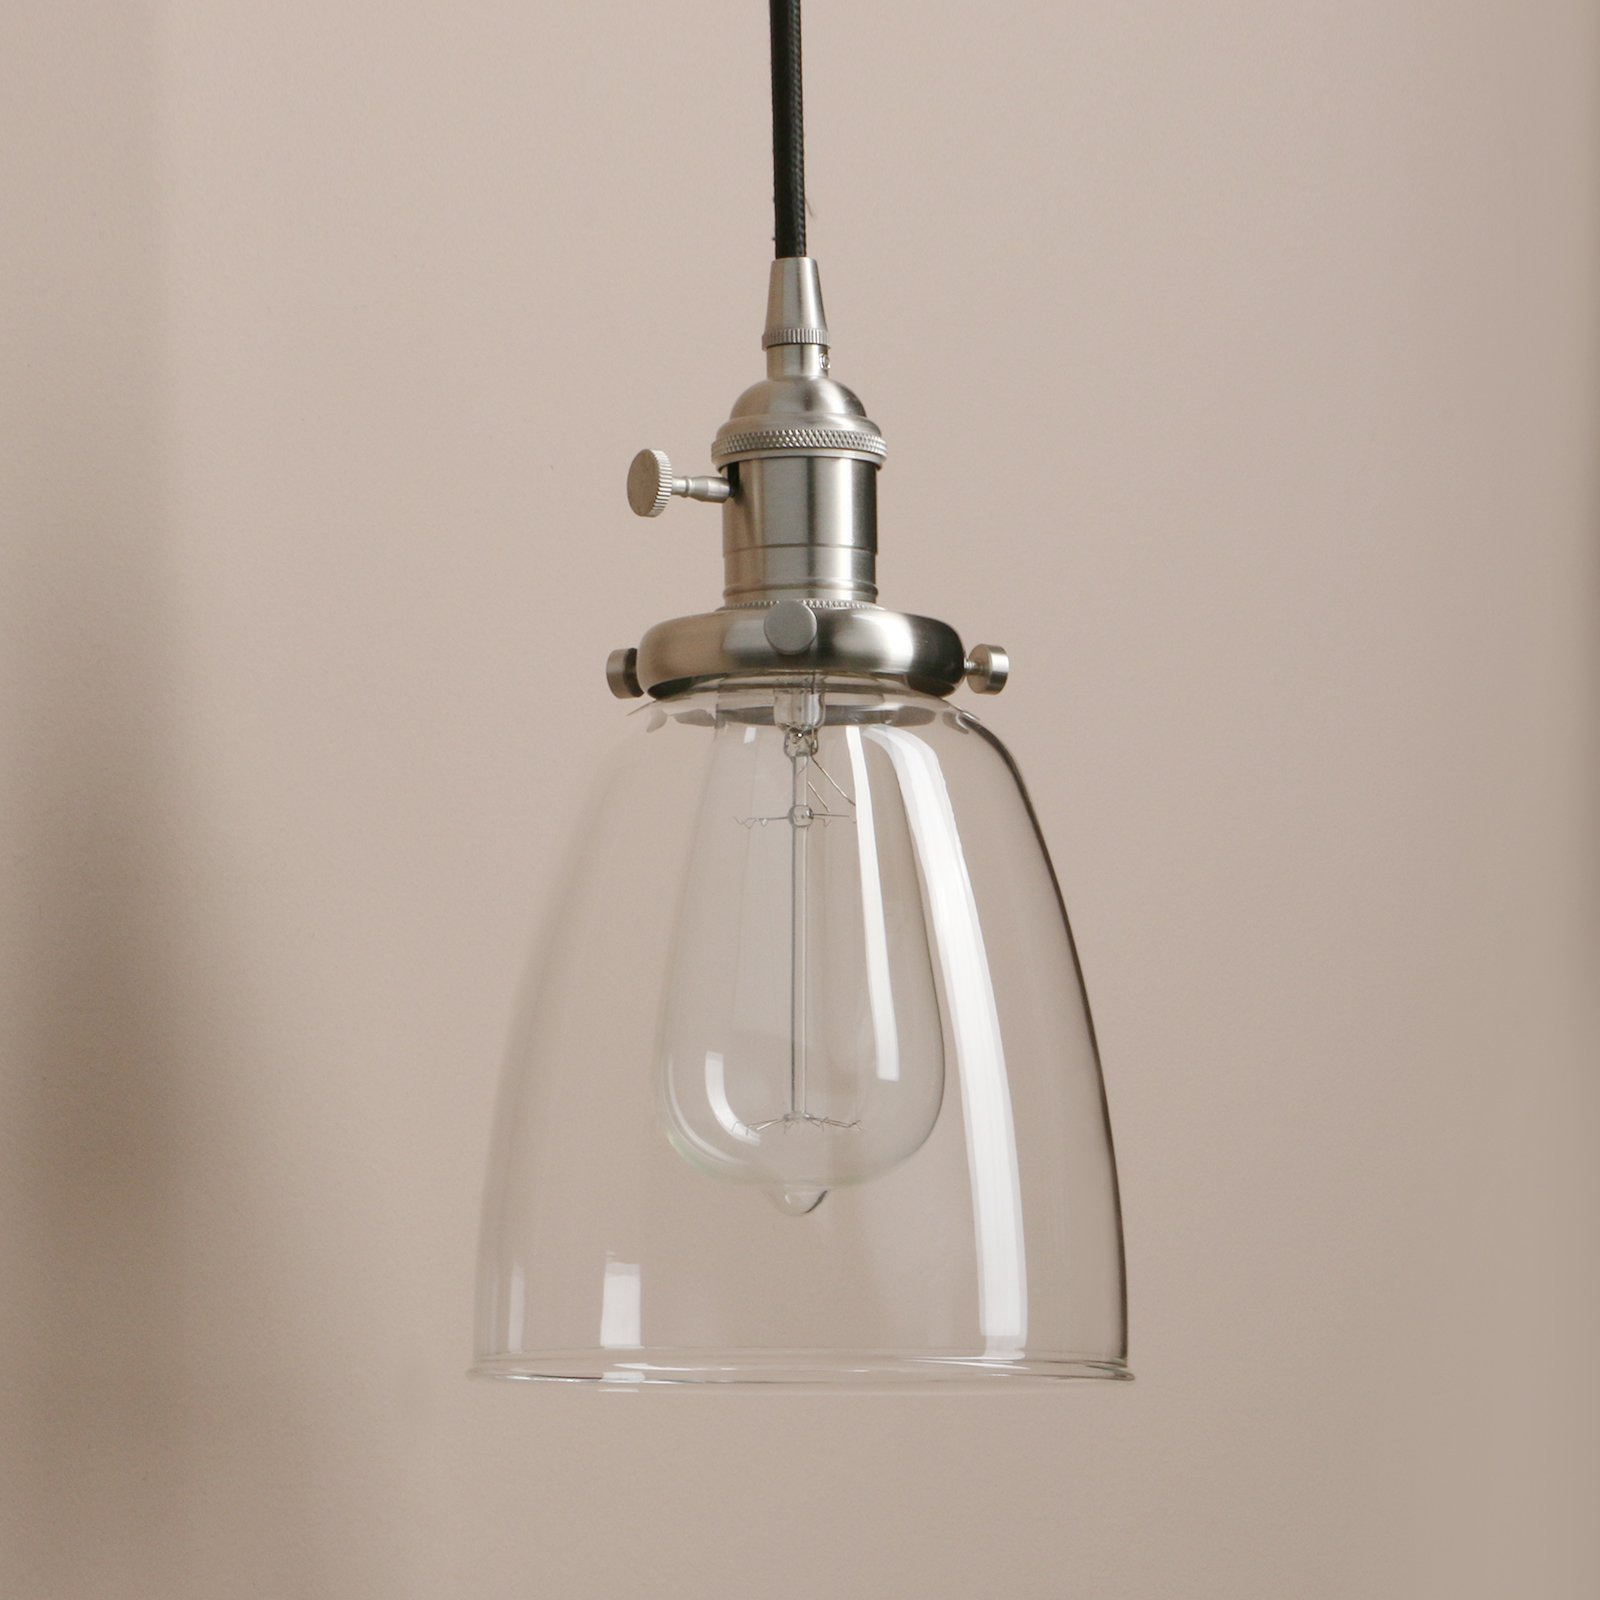 Pathson Industrial 3-Light Pendant Lighting Kitchen Island Hanging Lamps with Oval Clear Glass Shade Chandelier Ceiling Light Fixture (Brushed Steel) by Pathson (Image #6)